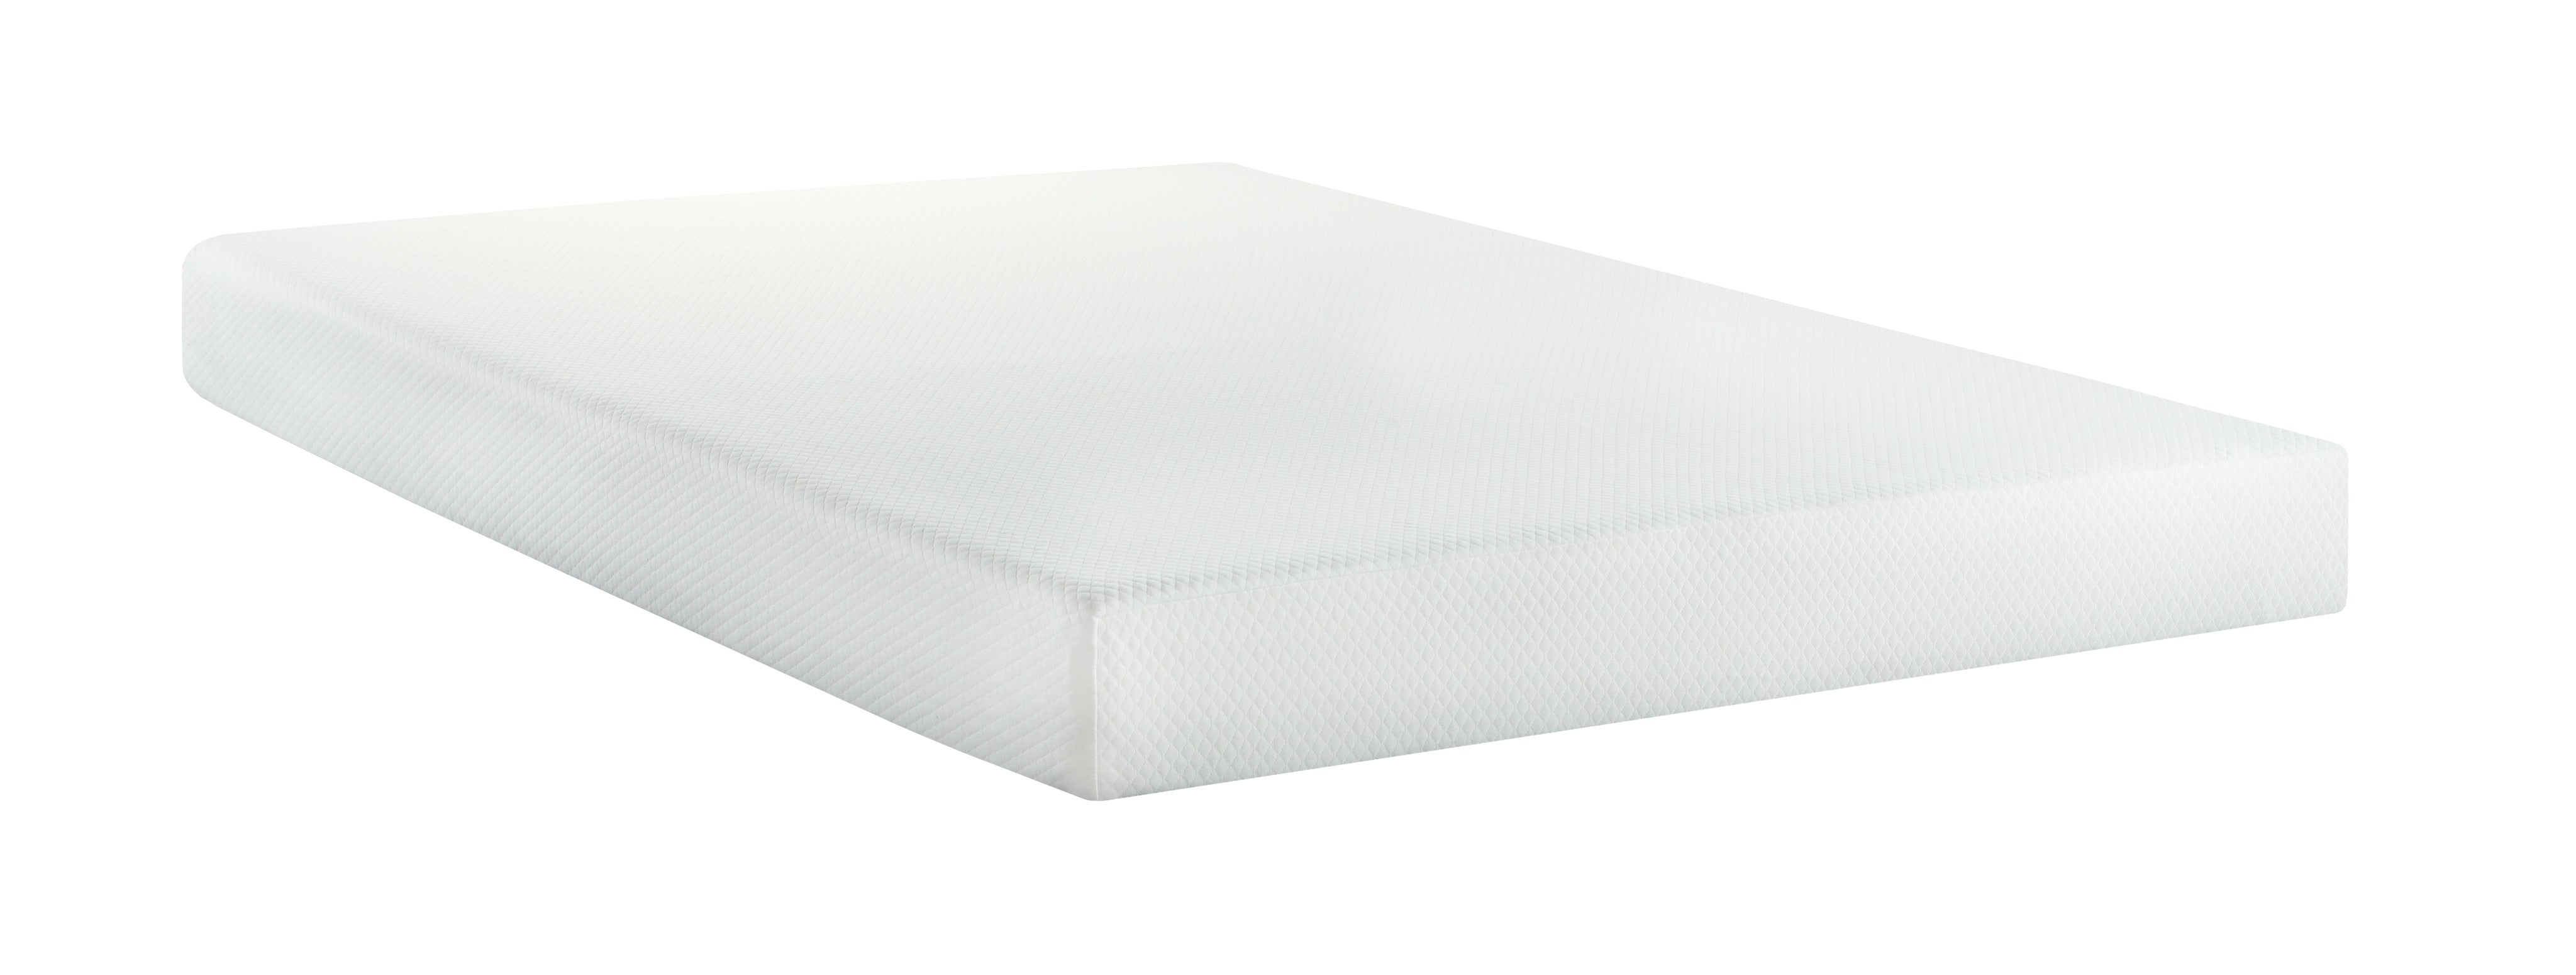 mattresses products mattress of topper memory furniture foam ideal original copy latex